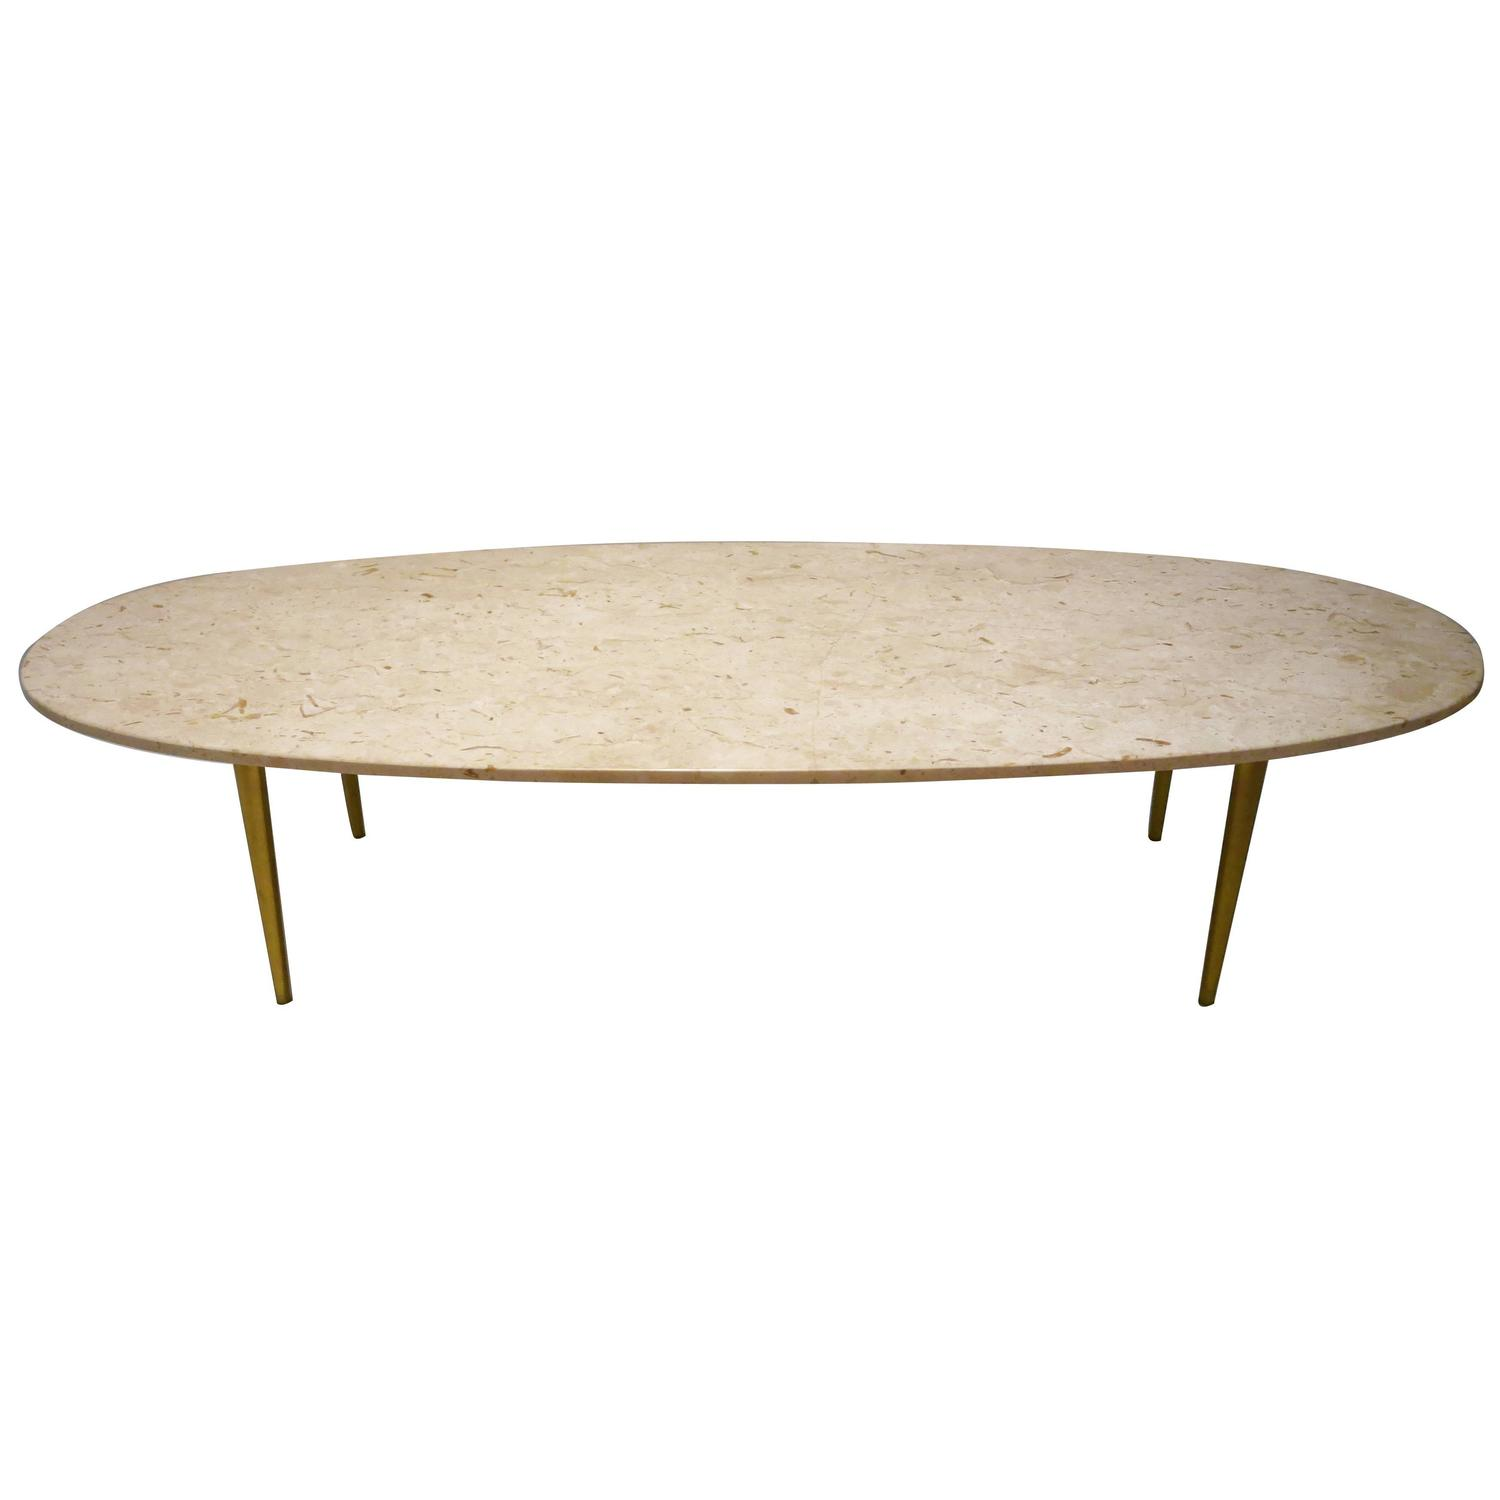 Mid century modern marble and brass large oval coffee table at 1stdibs Wide coffee table